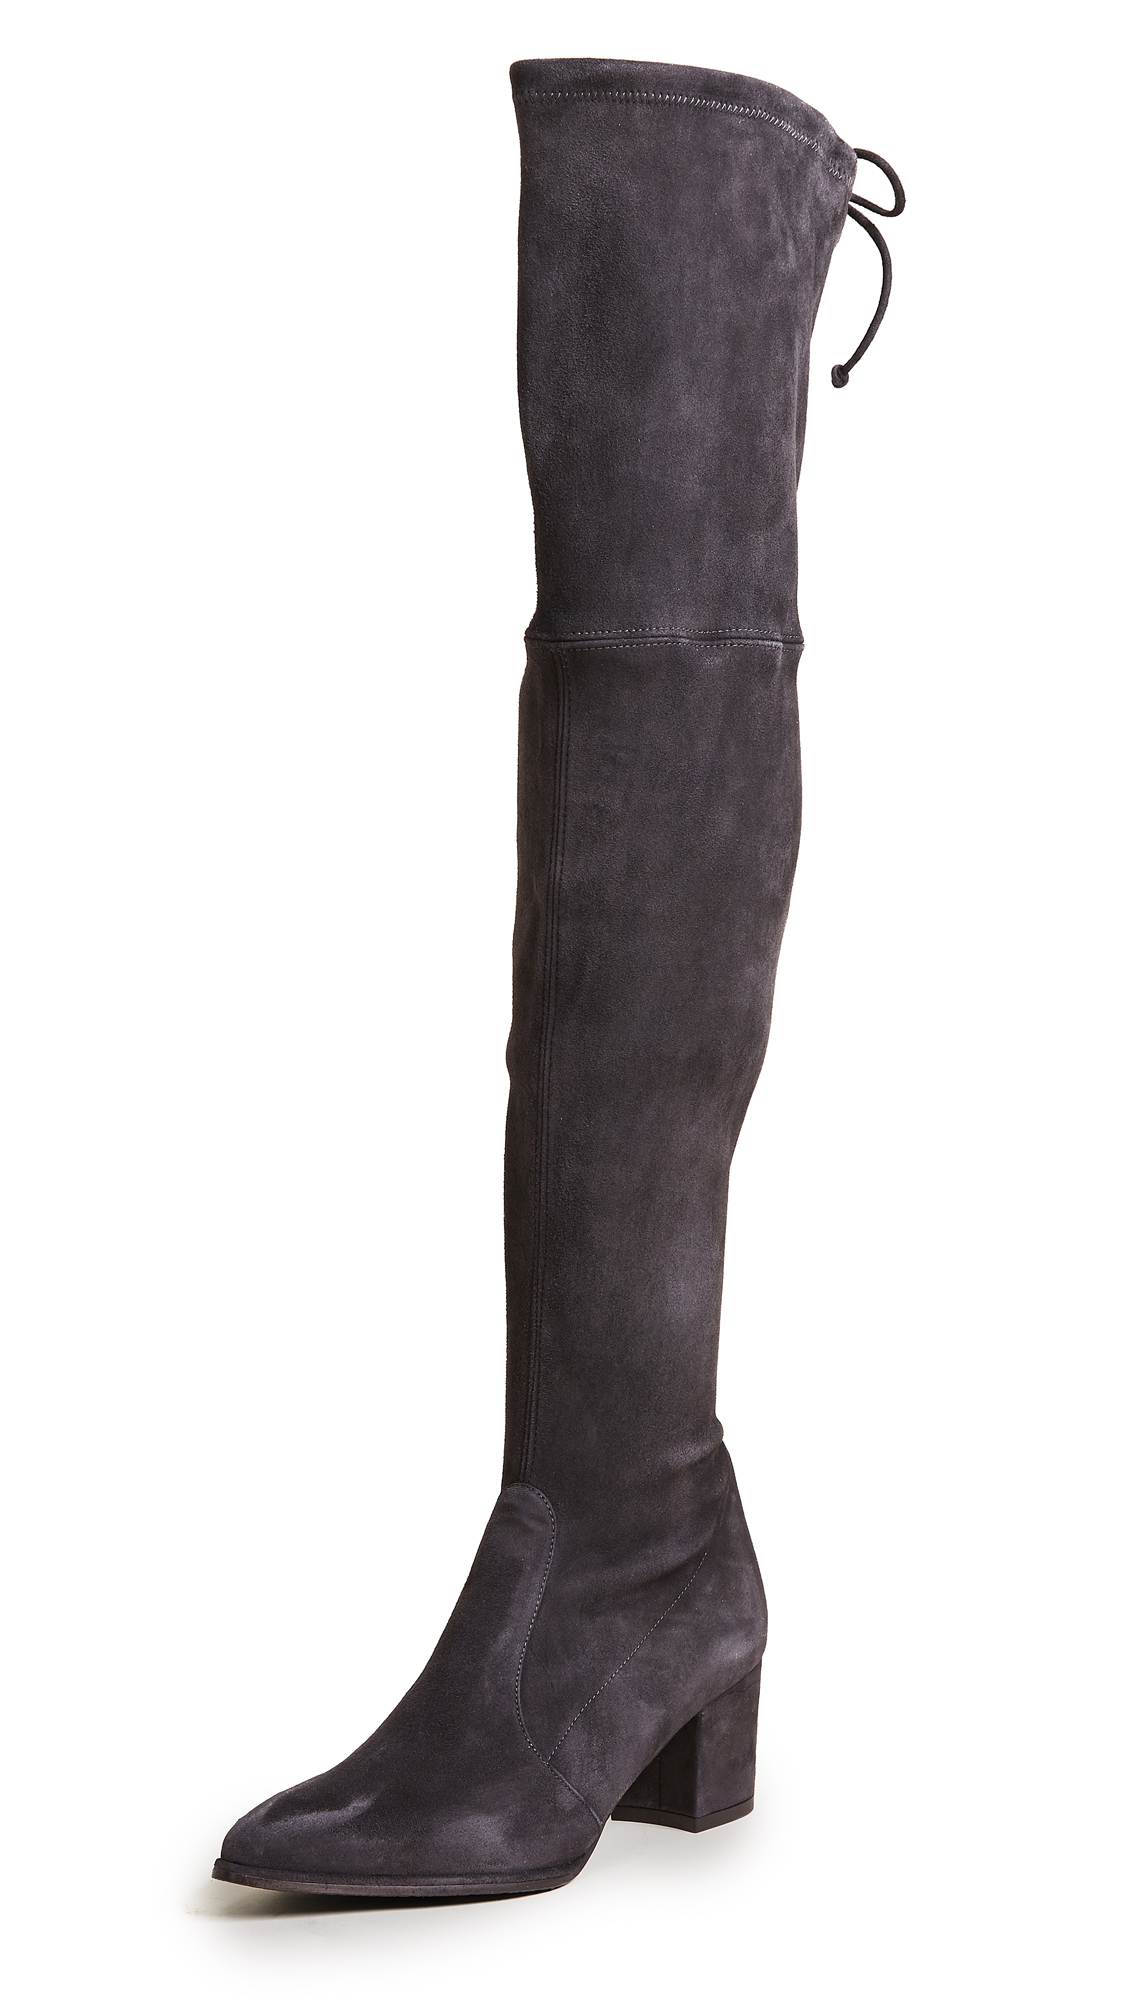 Stuart Weitzman Thighland Over the Knee Boots - Slate